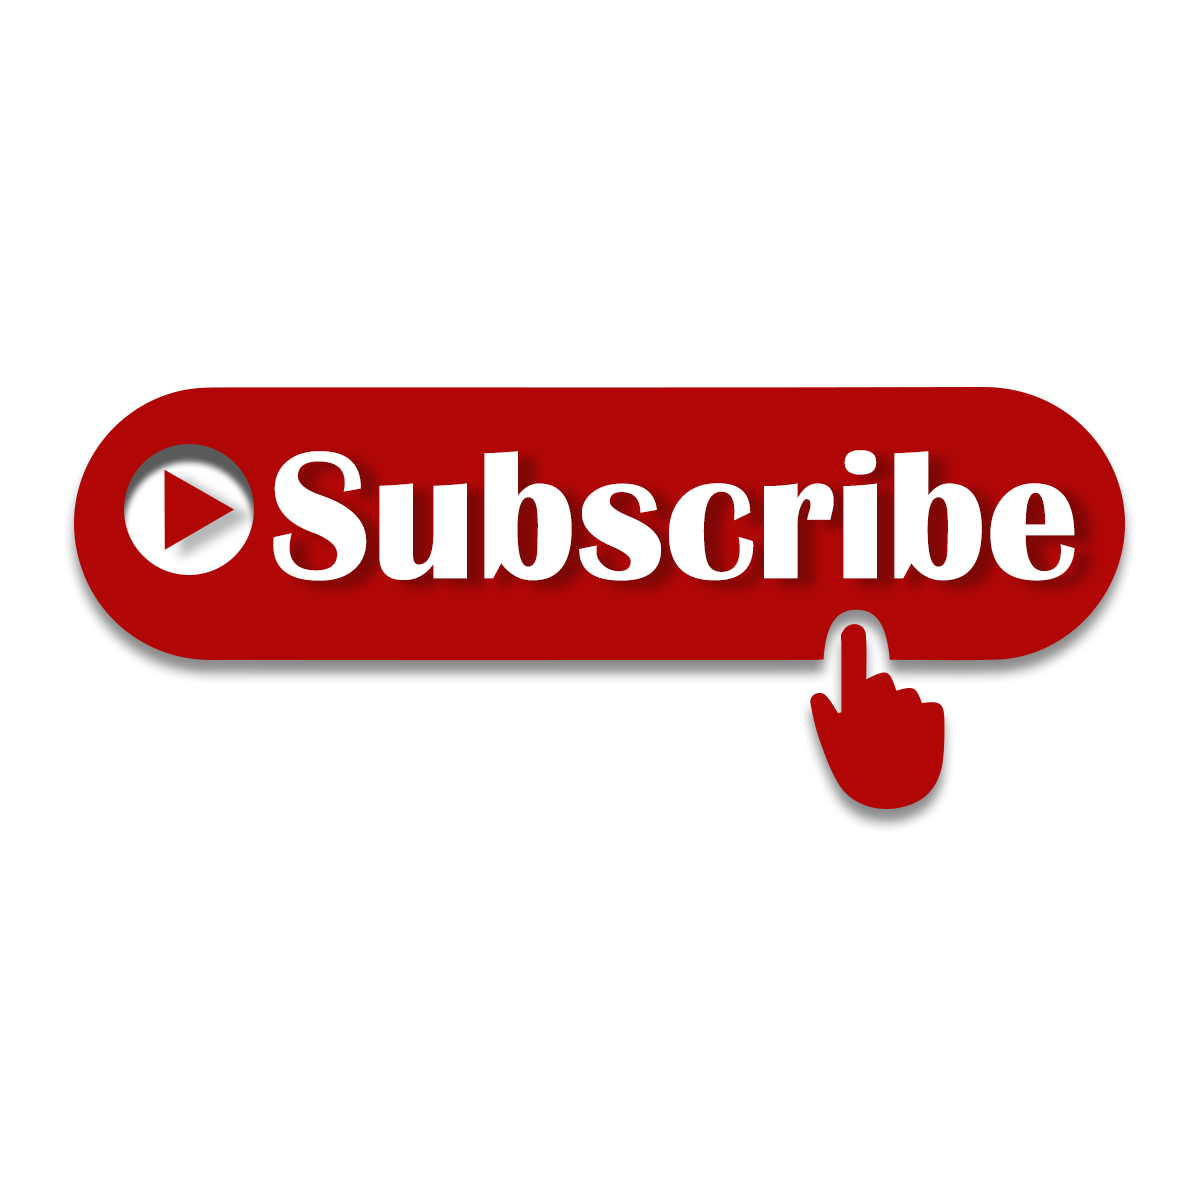 Free Download Subscribe Button Png High Quality Image Transparent Background This Is Amazing Vector Png Subscribe Youtube Design Youtube Thumbnail Button Image